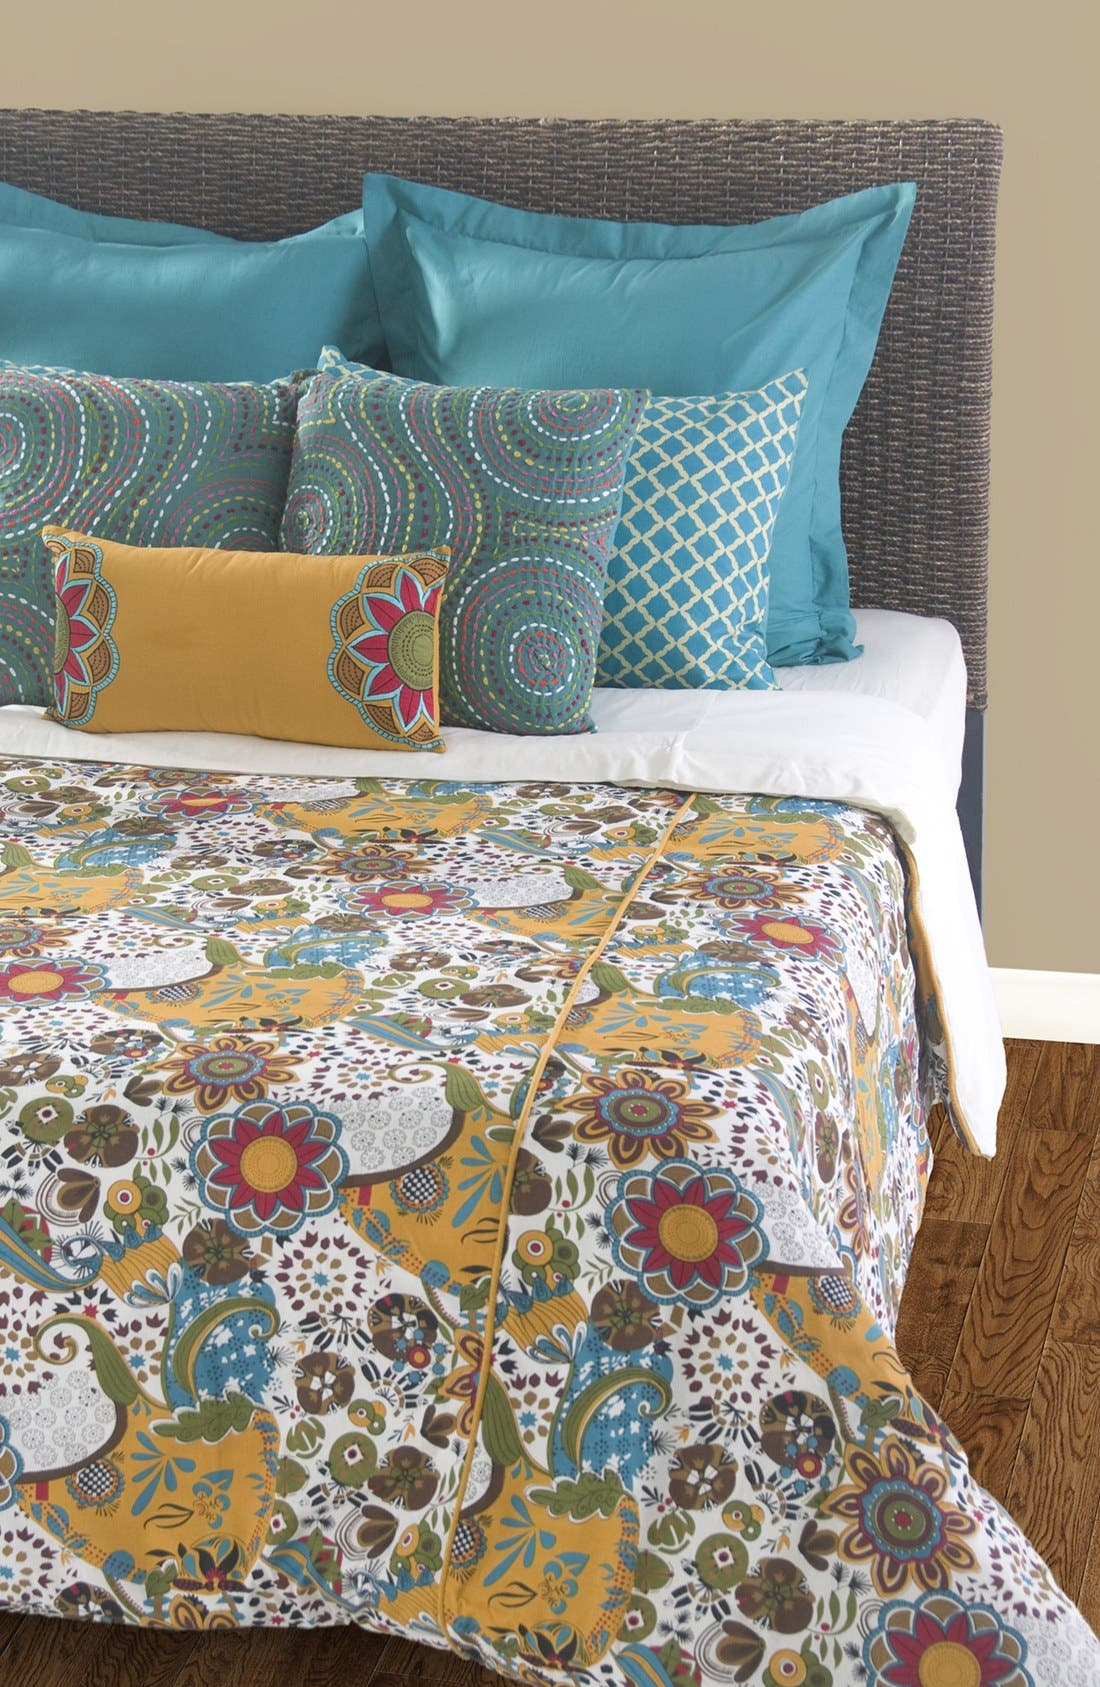 Alternate Image 1 Selected - Rizzy Home Carmen Duvet Cover & Sham Set